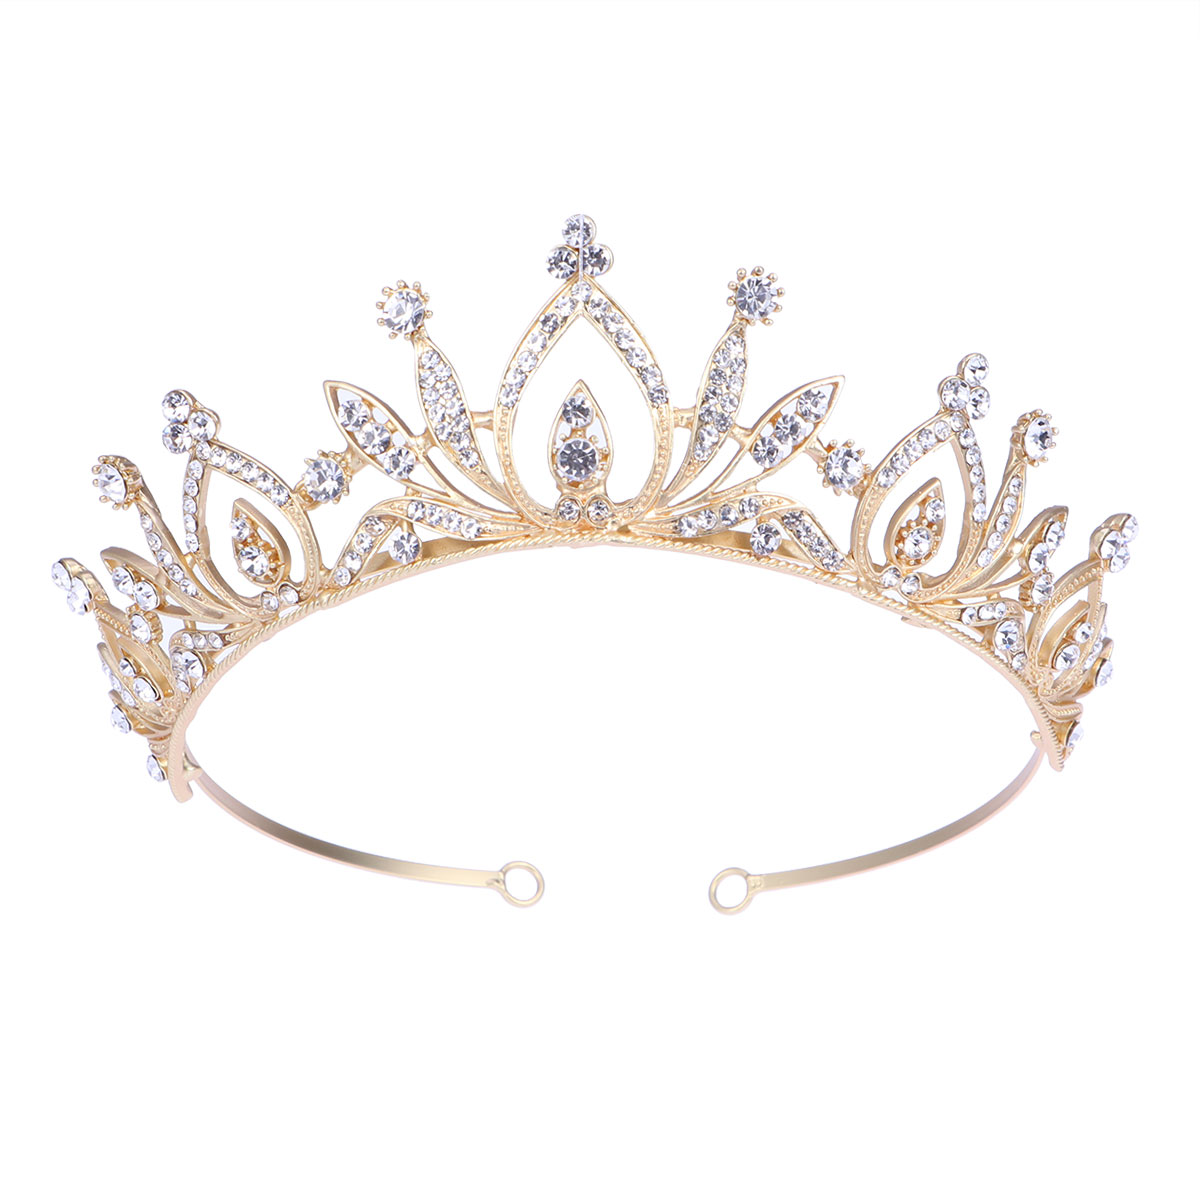 3Pcs Shiny Crown Hairband Vintage Women Headbands Princess Girl Crown Headband for Baby Girl Party Wedding Photography Accessories